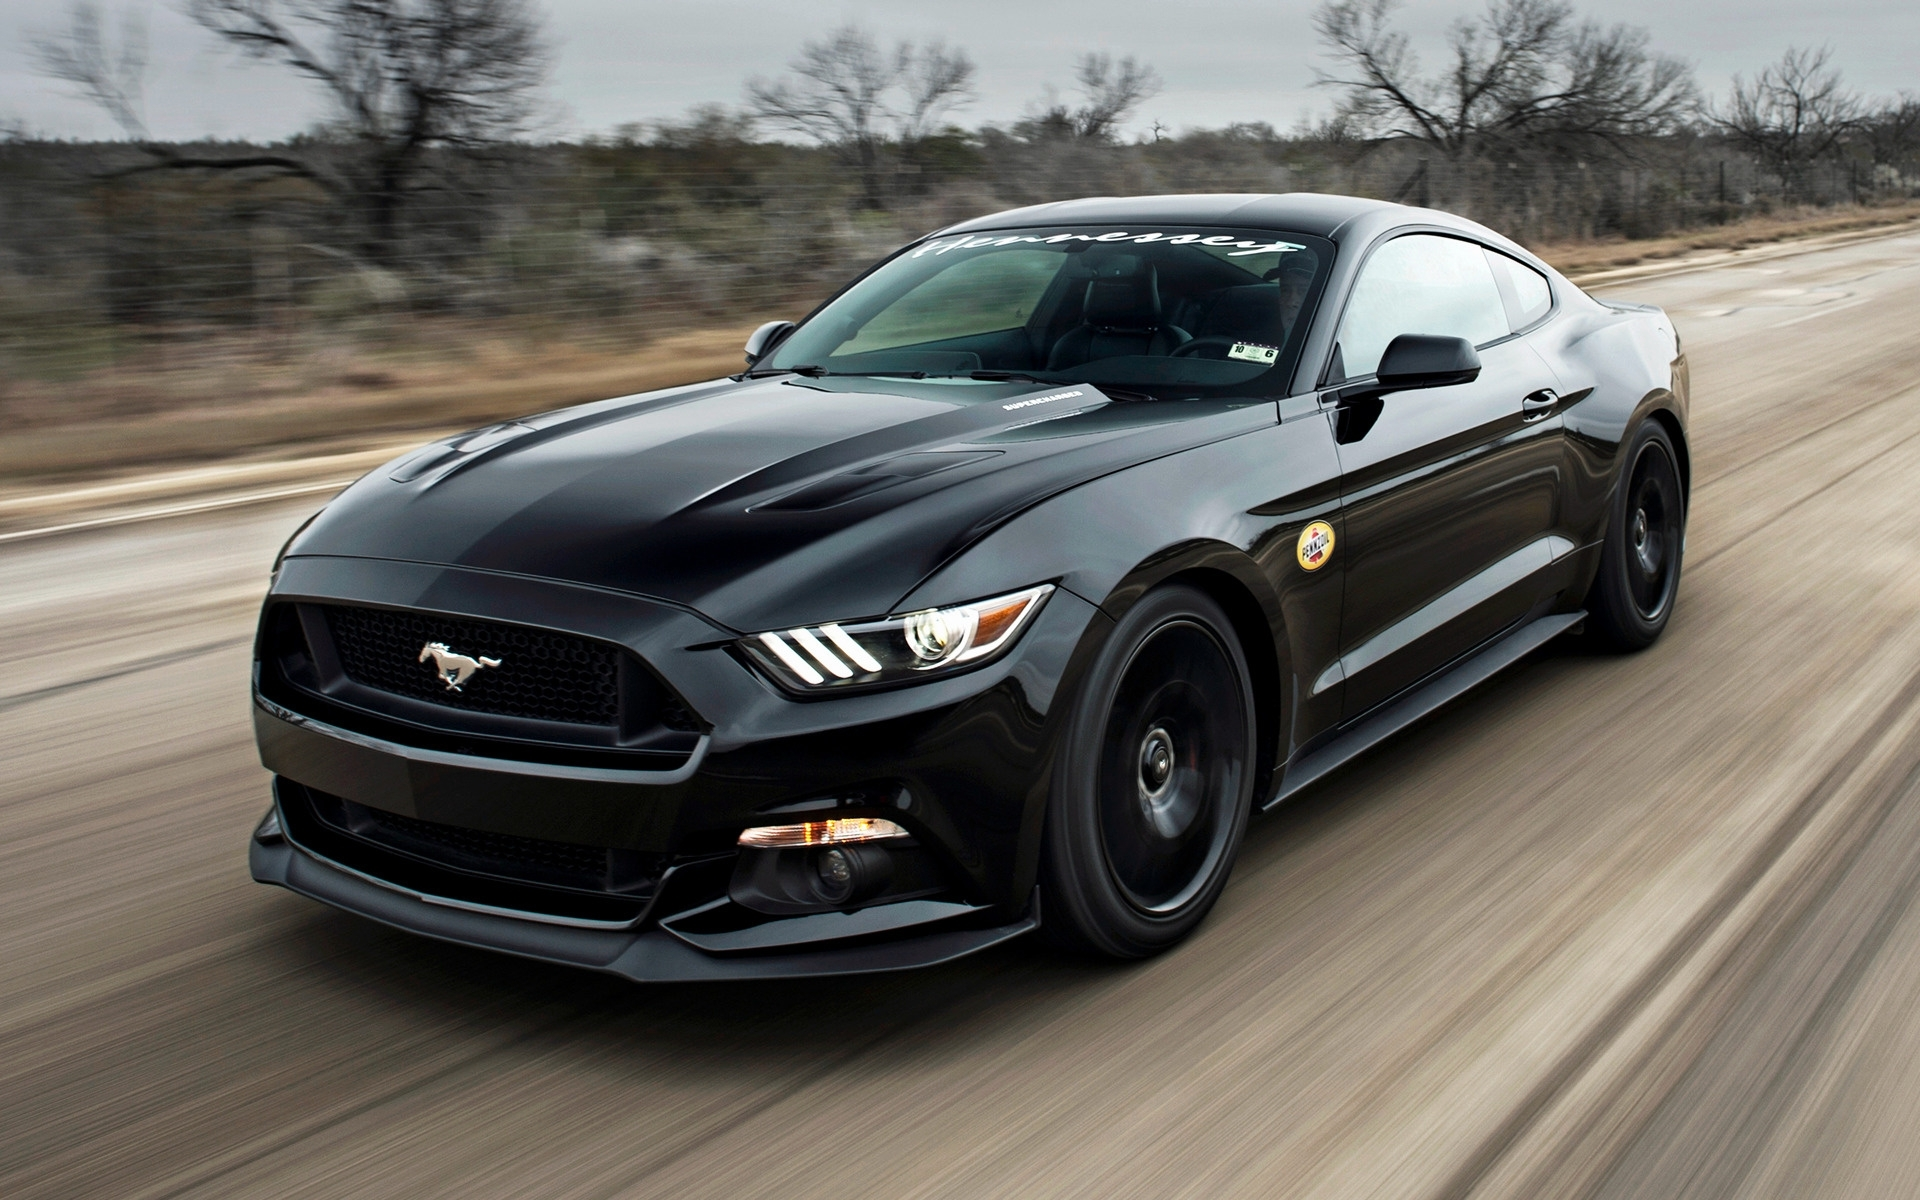 hennessey mustang gt hpe700 supercharged (2015) wallpapers and hd